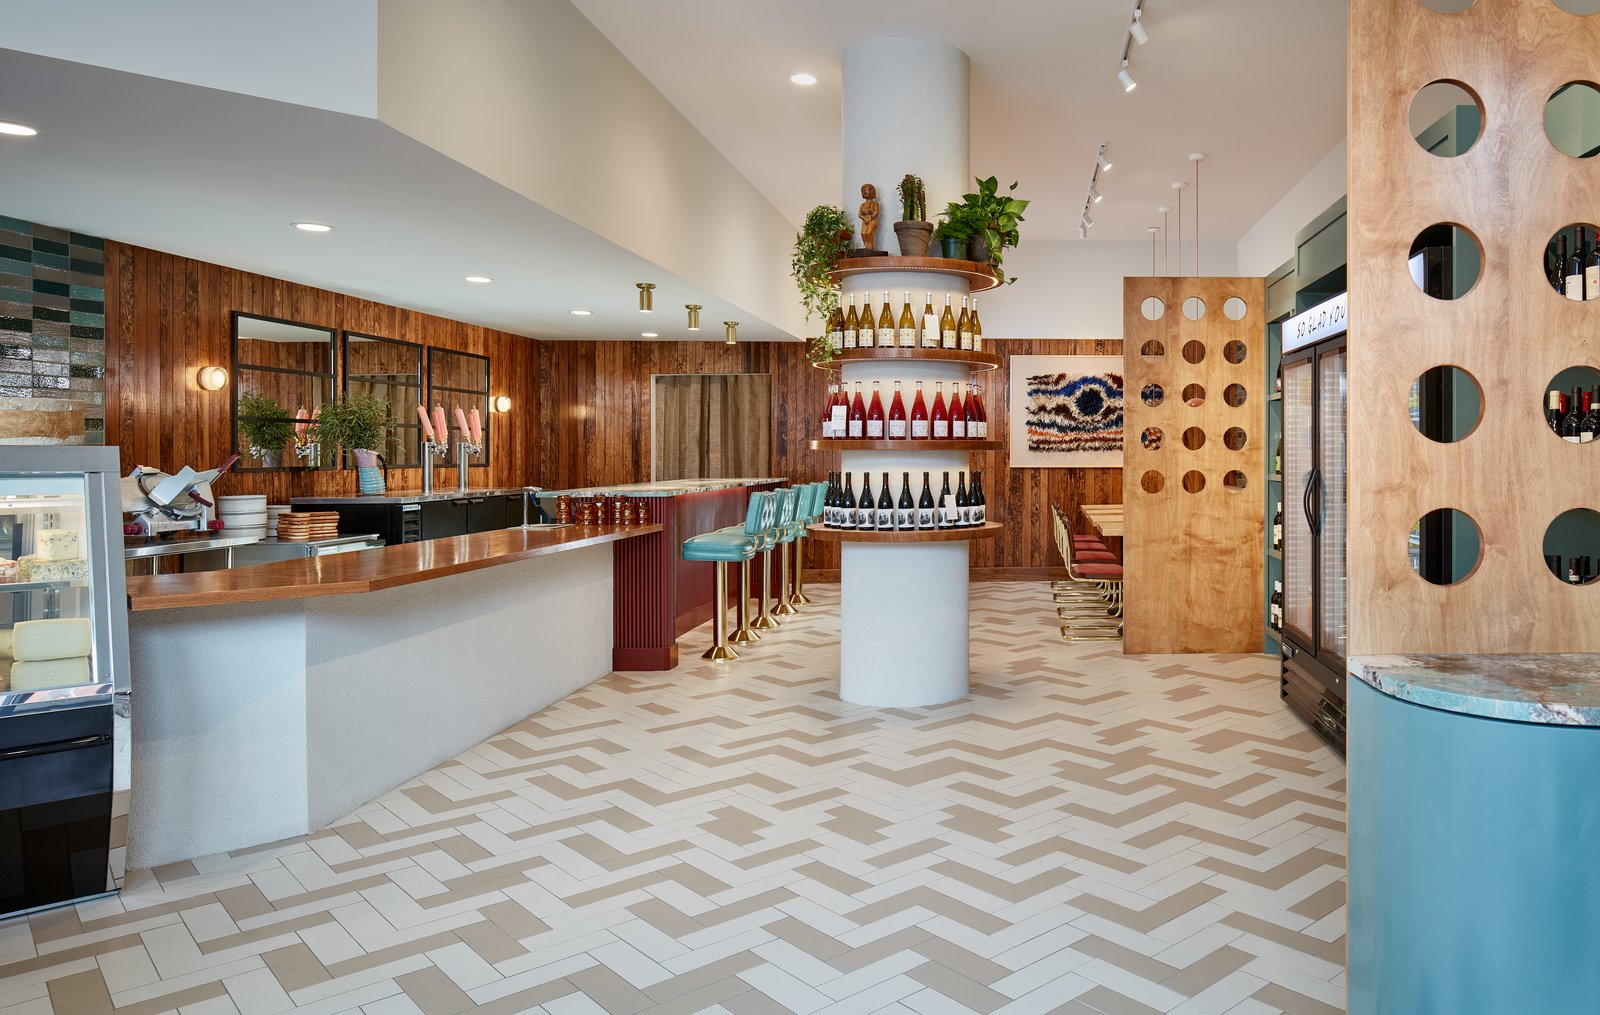 Dining, Recessed, Track, Stools, Chair, Shelves, Ceramic Tile, Table, and Bar A mix of wood and tile lends Brothers and Sisters a rich texture.  Best Dining Shelves Table Bar Recessed Stools Photos from A New Chicago Cafe and Bottle Shop Flaunts Funky '70s Vibes